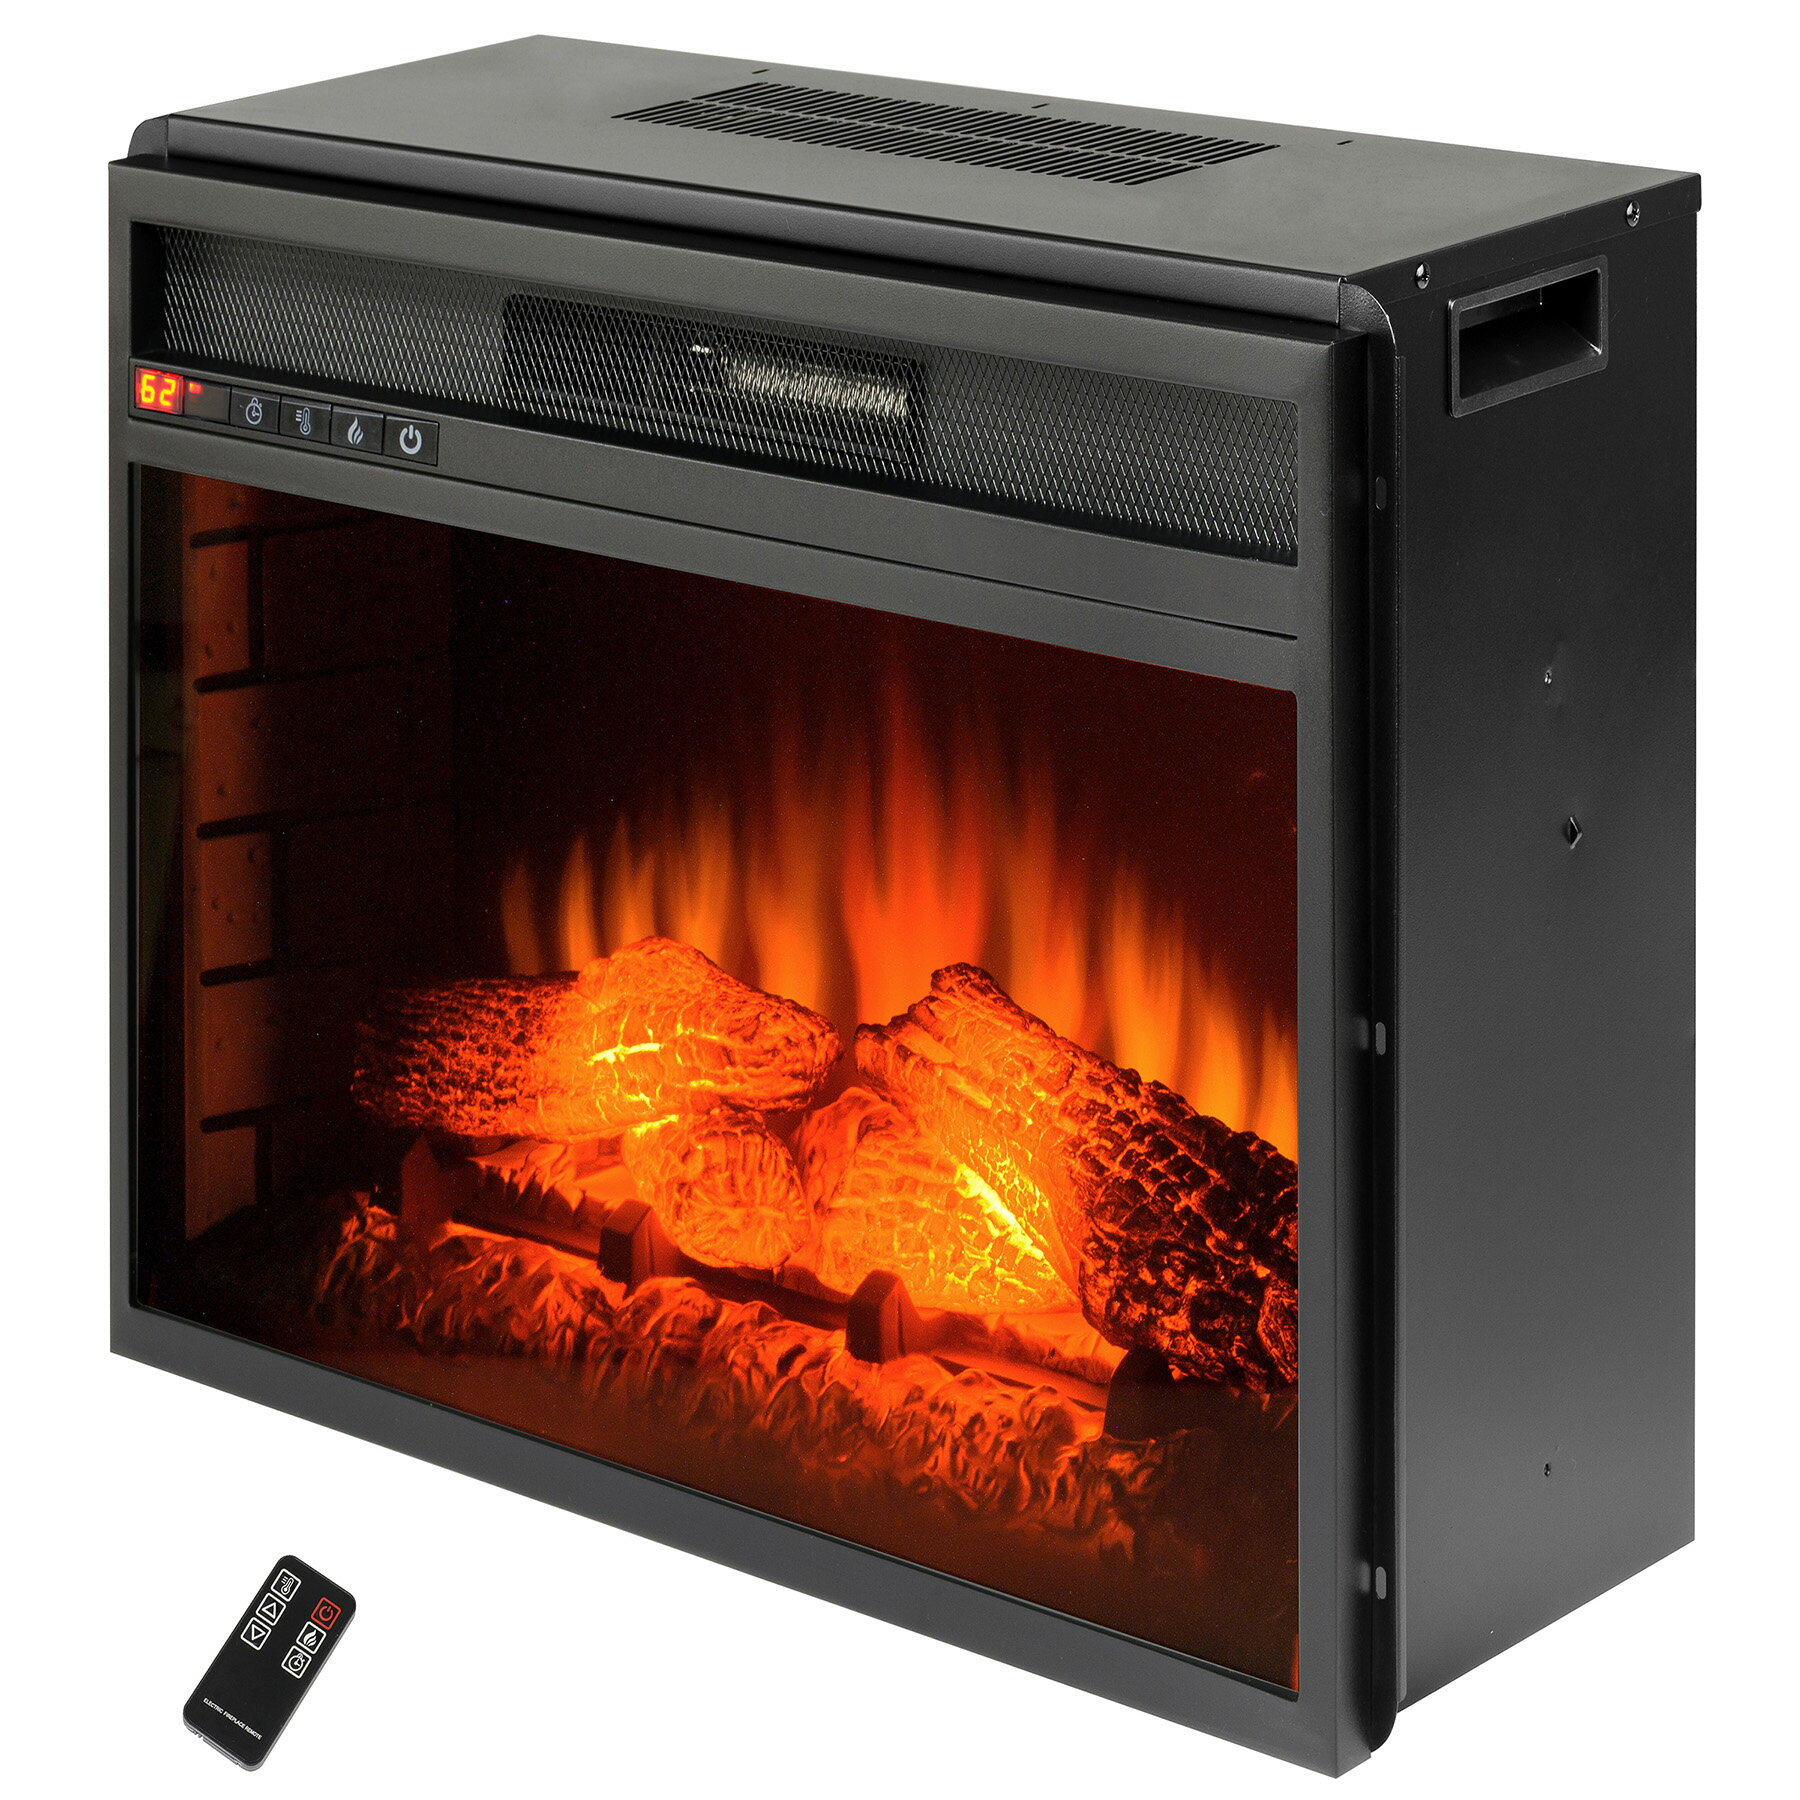 "AKDY 33"" Freestanding Insert 3D Flame Log Fuel Bed Electric Fireplace Heater Stove 3"